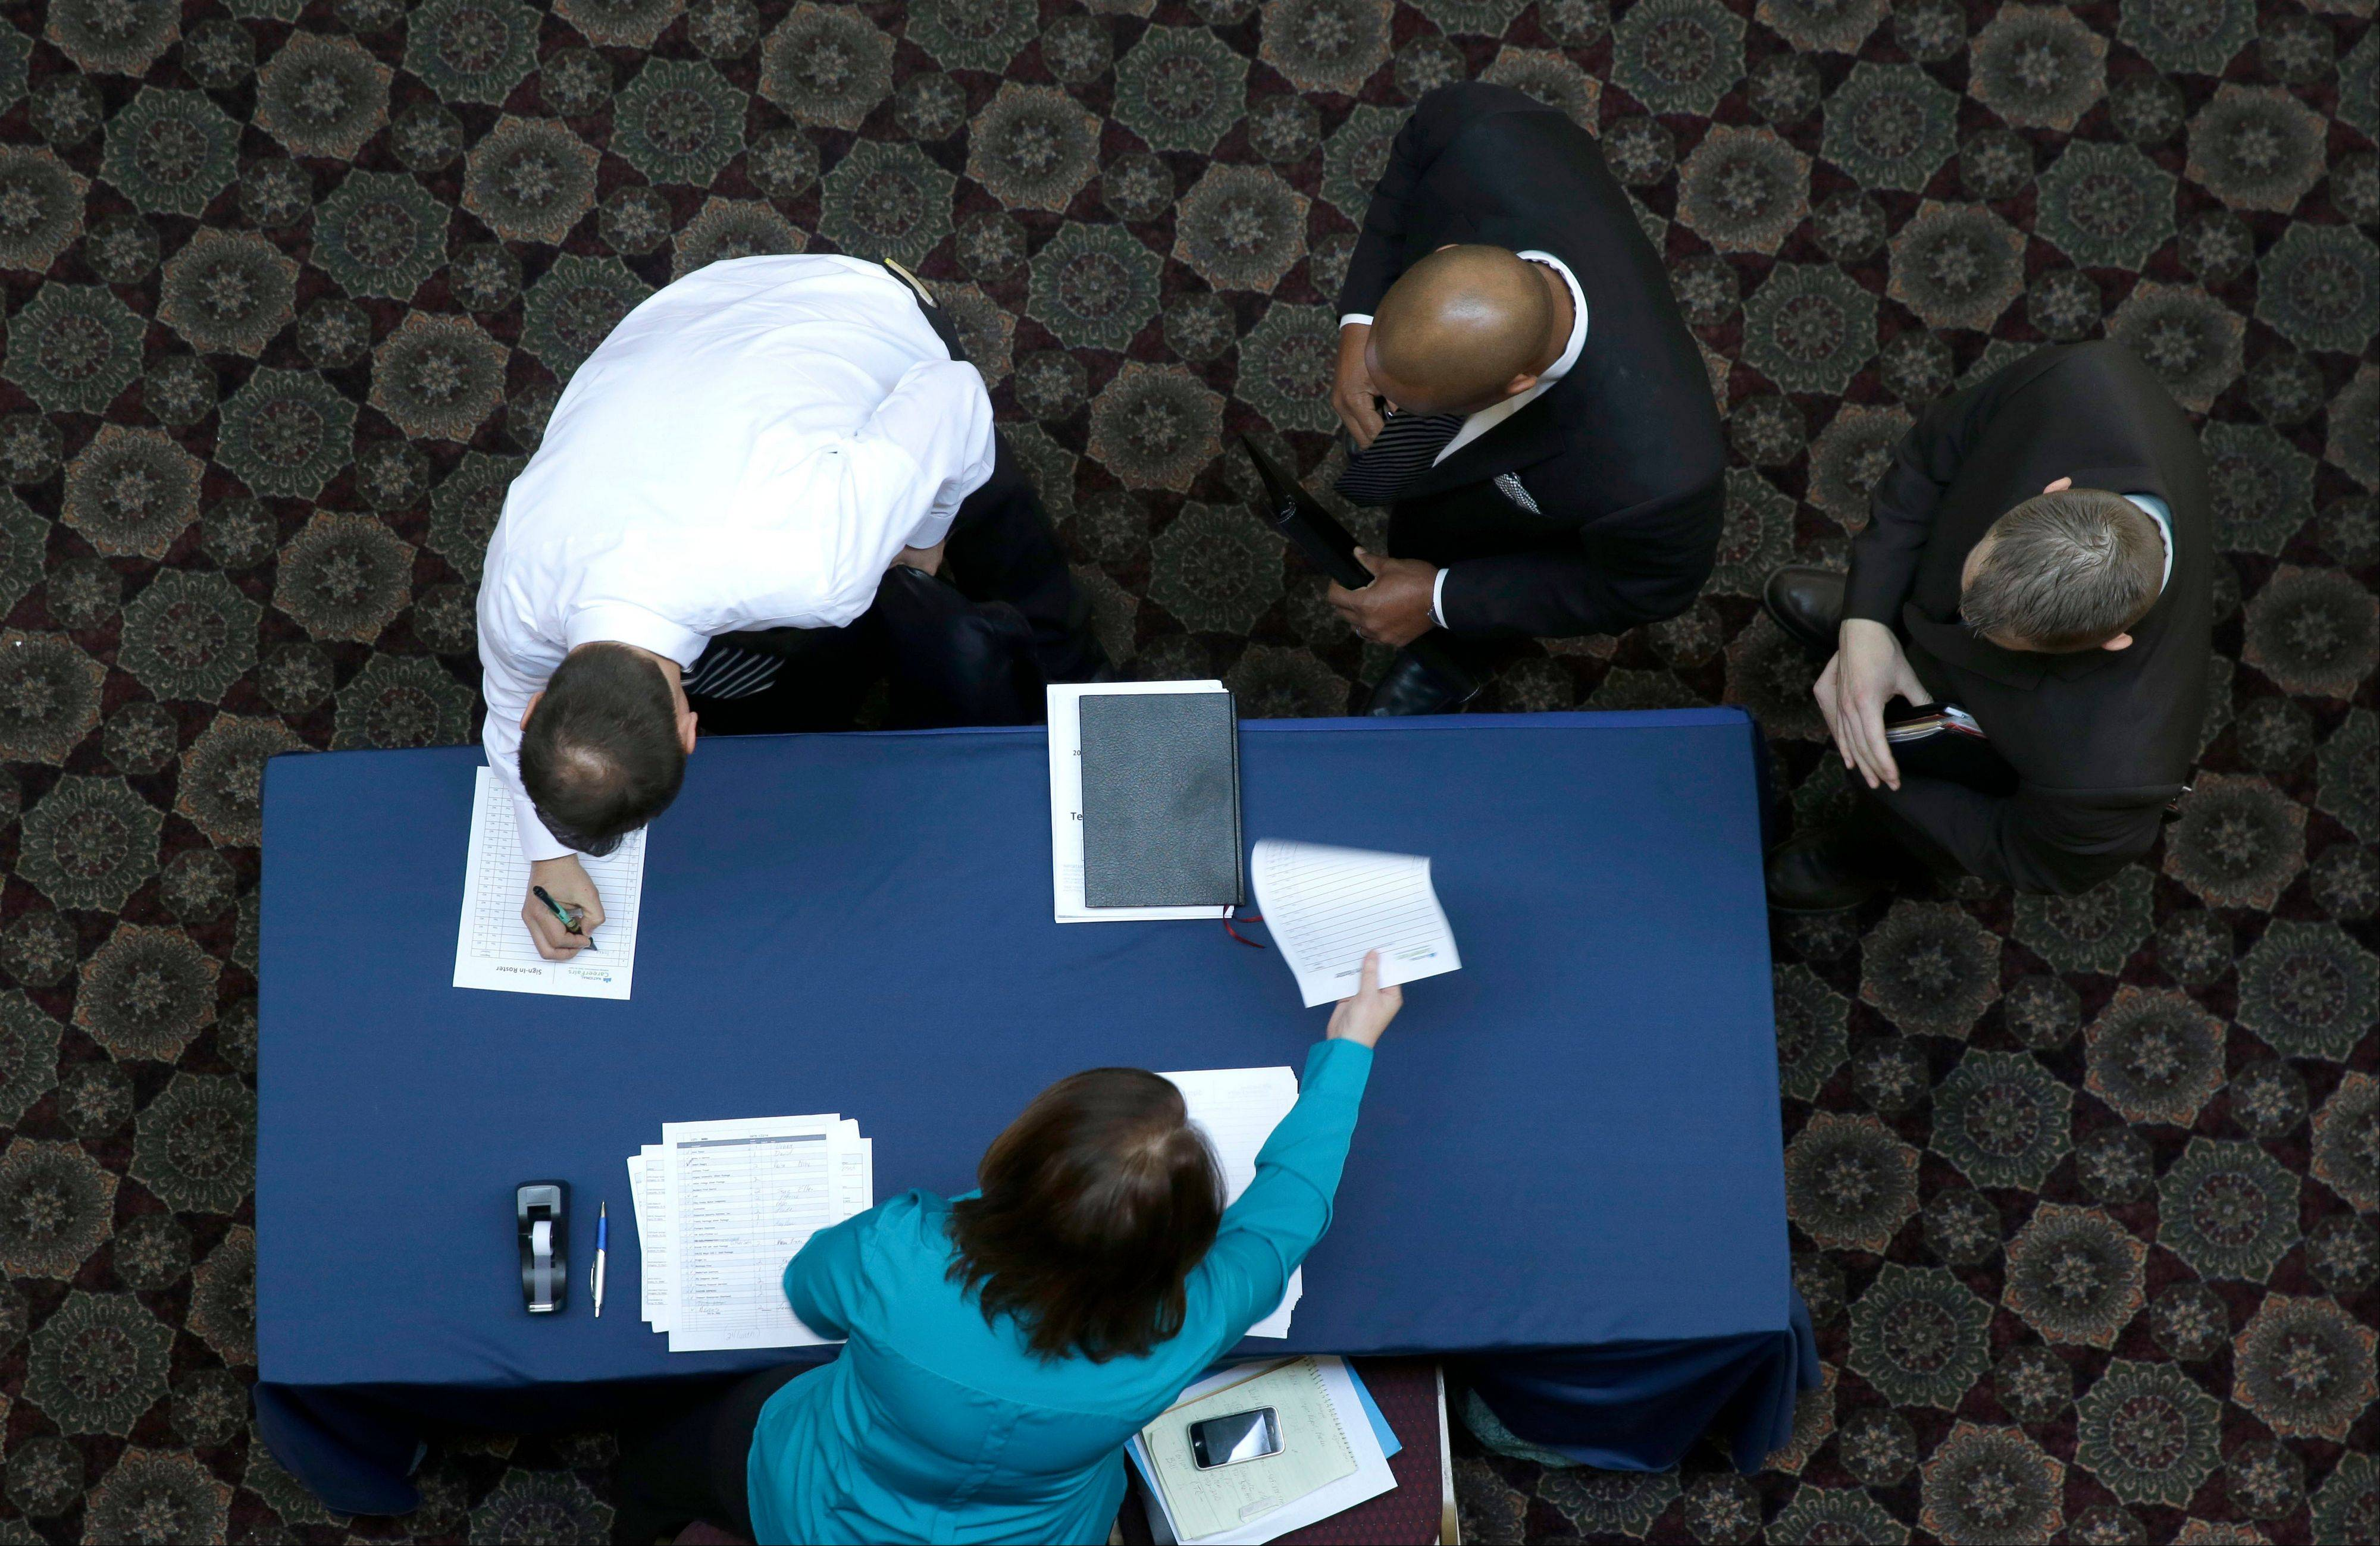 Job seekers sign in before meeting prospective employers during a career fair at a hotel in Dallas. The number of people applying for U.S. unemployment benefits declined 20,000 last week to 331,000, suggesting that Americans are facing fewer layoffs and better job prospects.